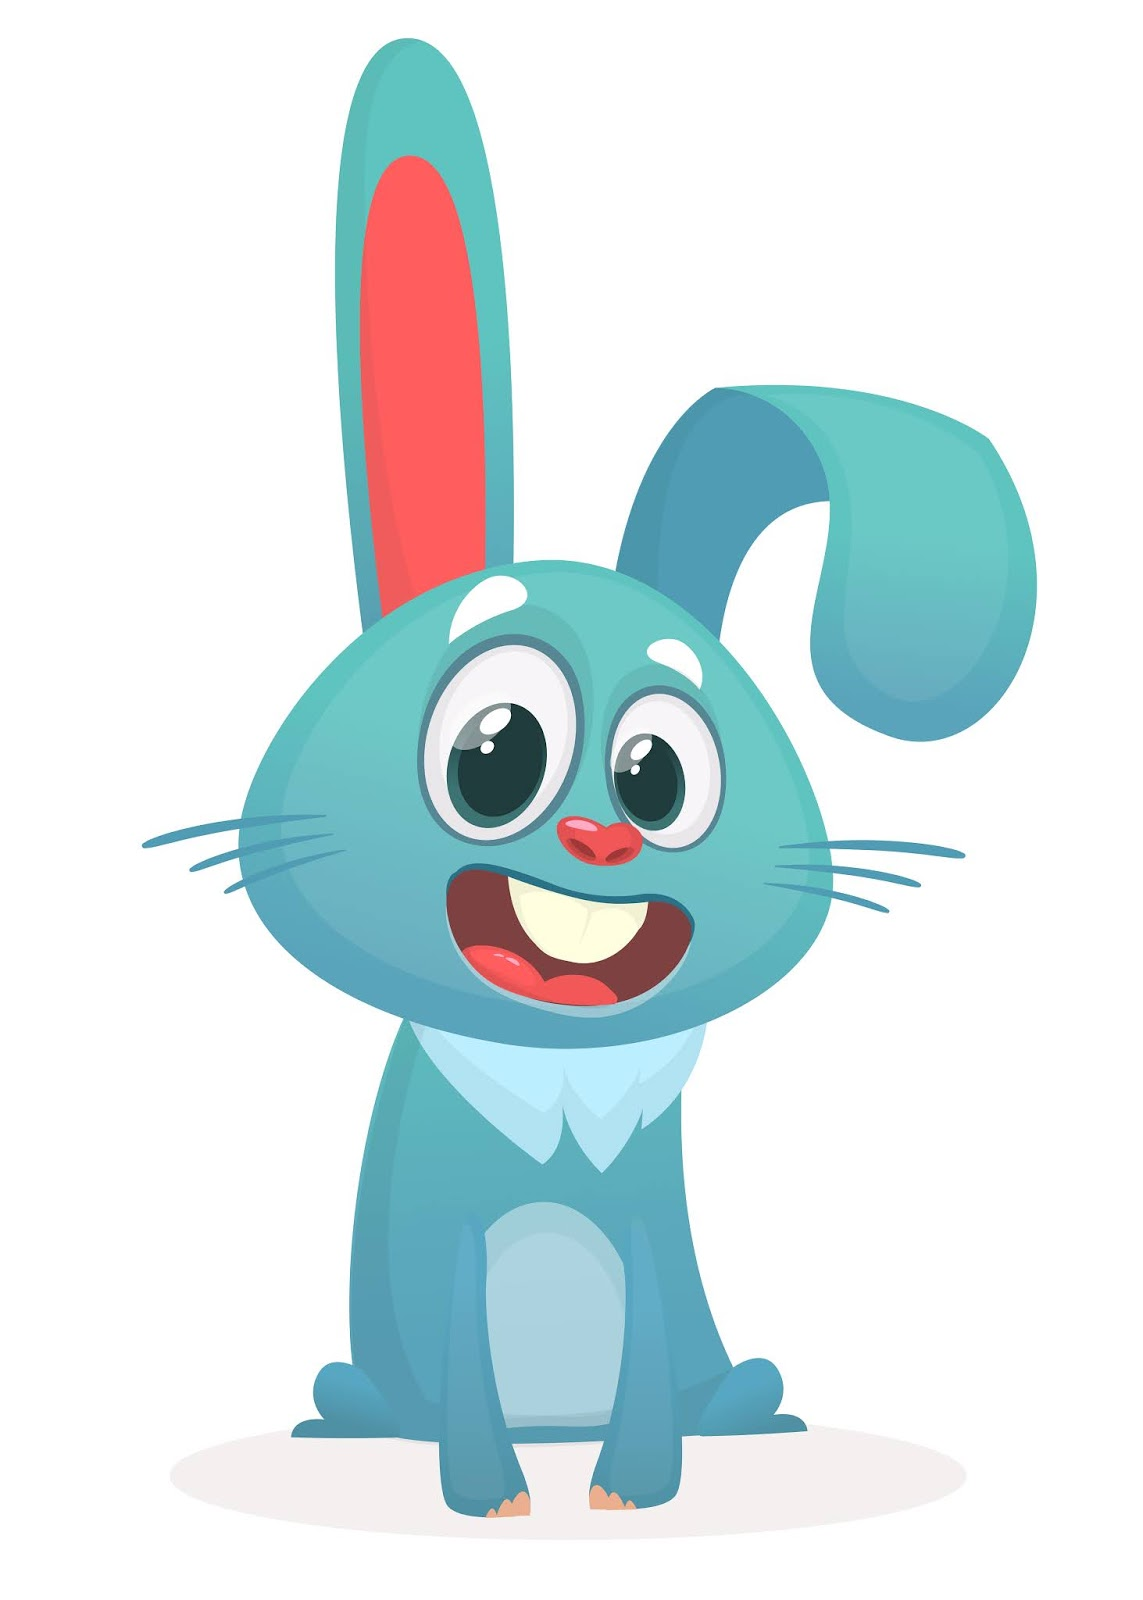 Cartoon Bunny Rabbit Style Free Download Vector CDR, AI, EPS and PNG Formats